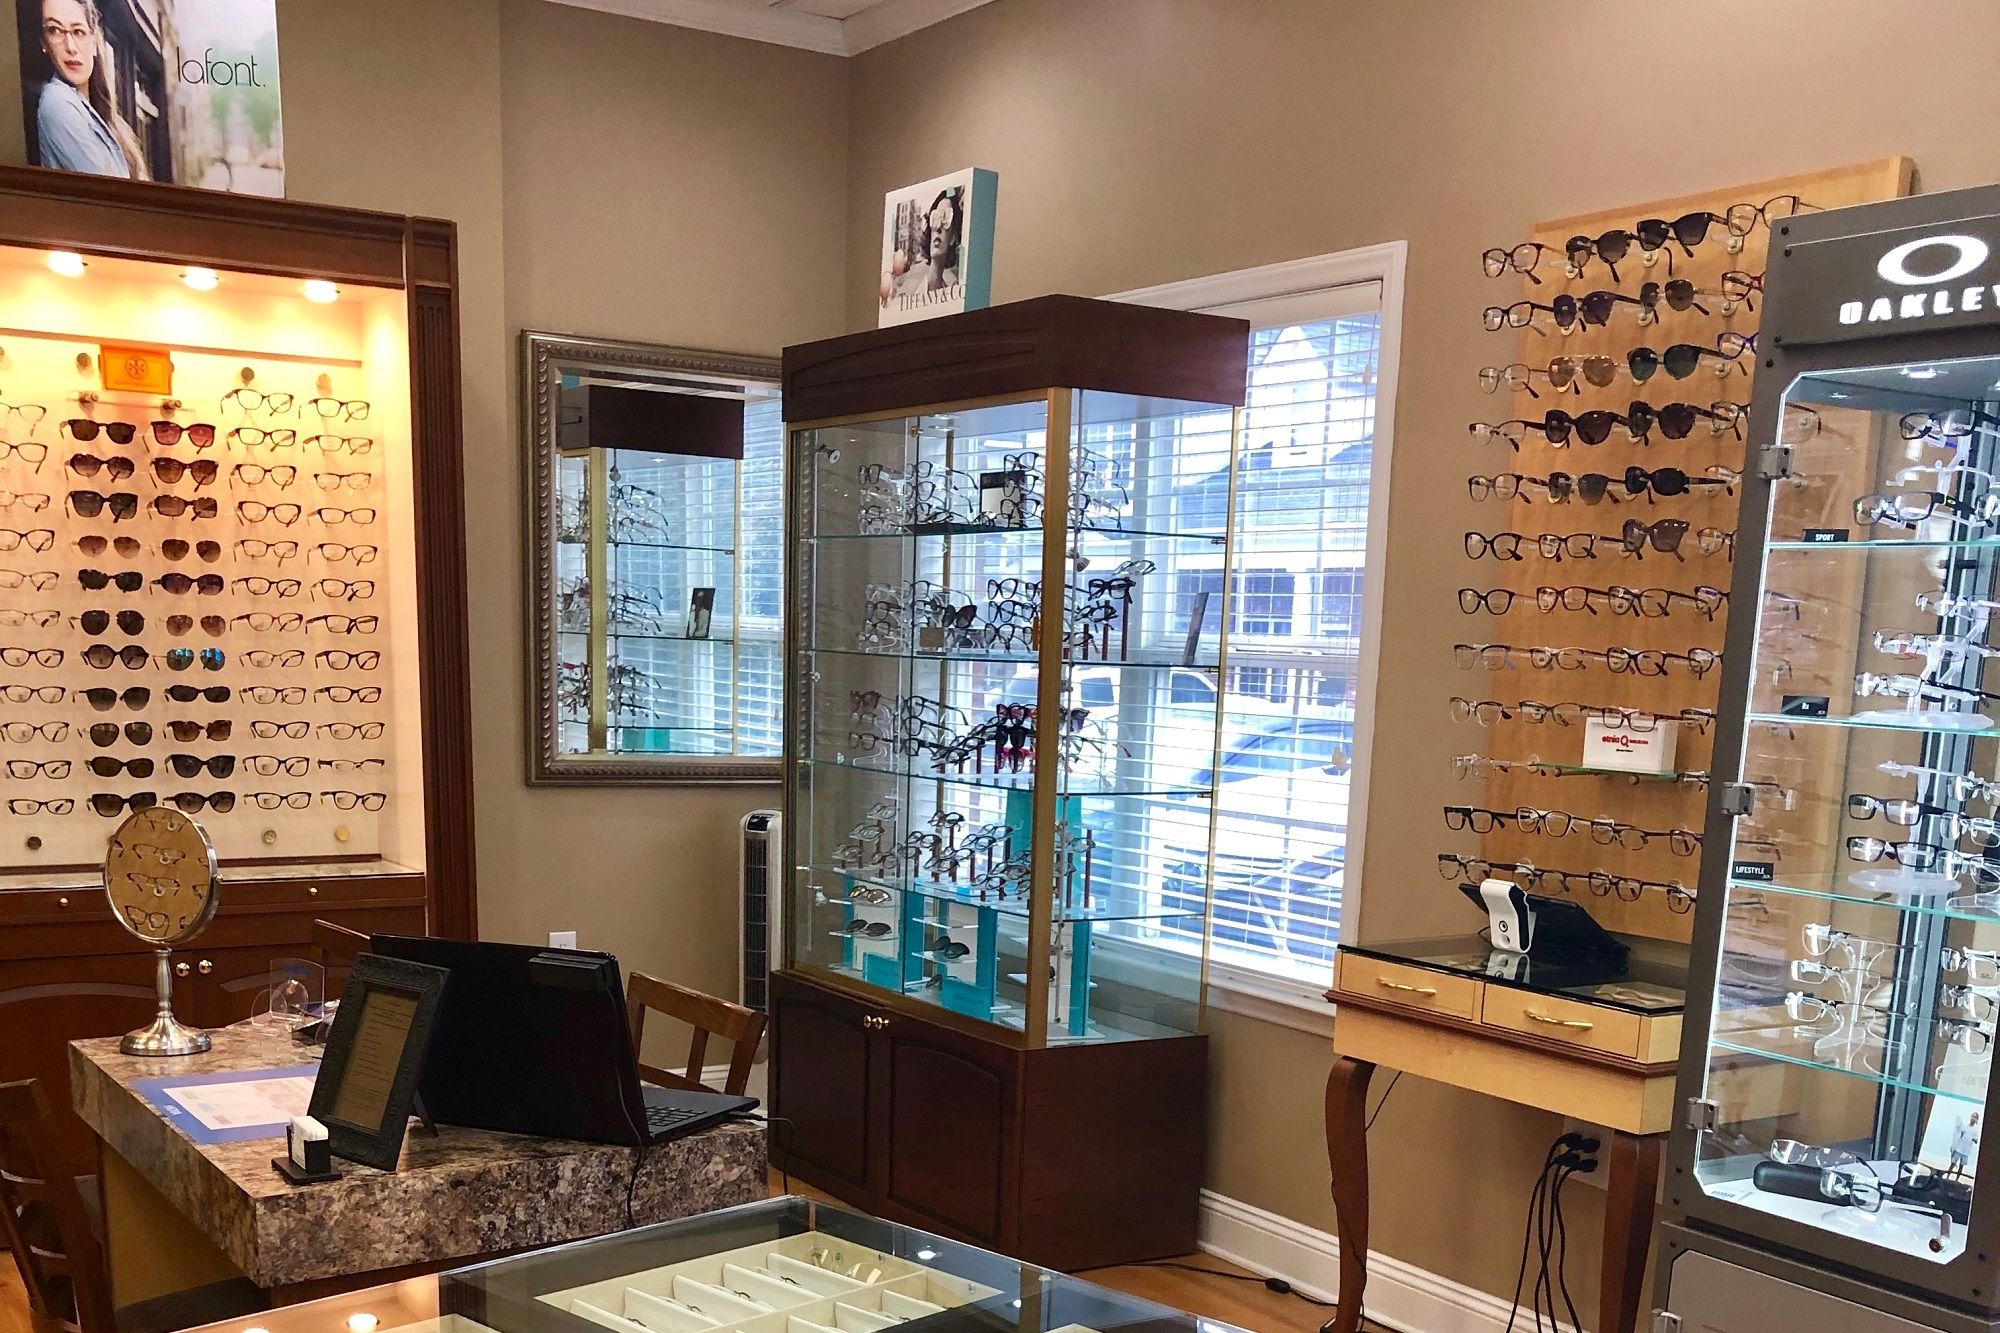 Eyeglass Sunglass displays